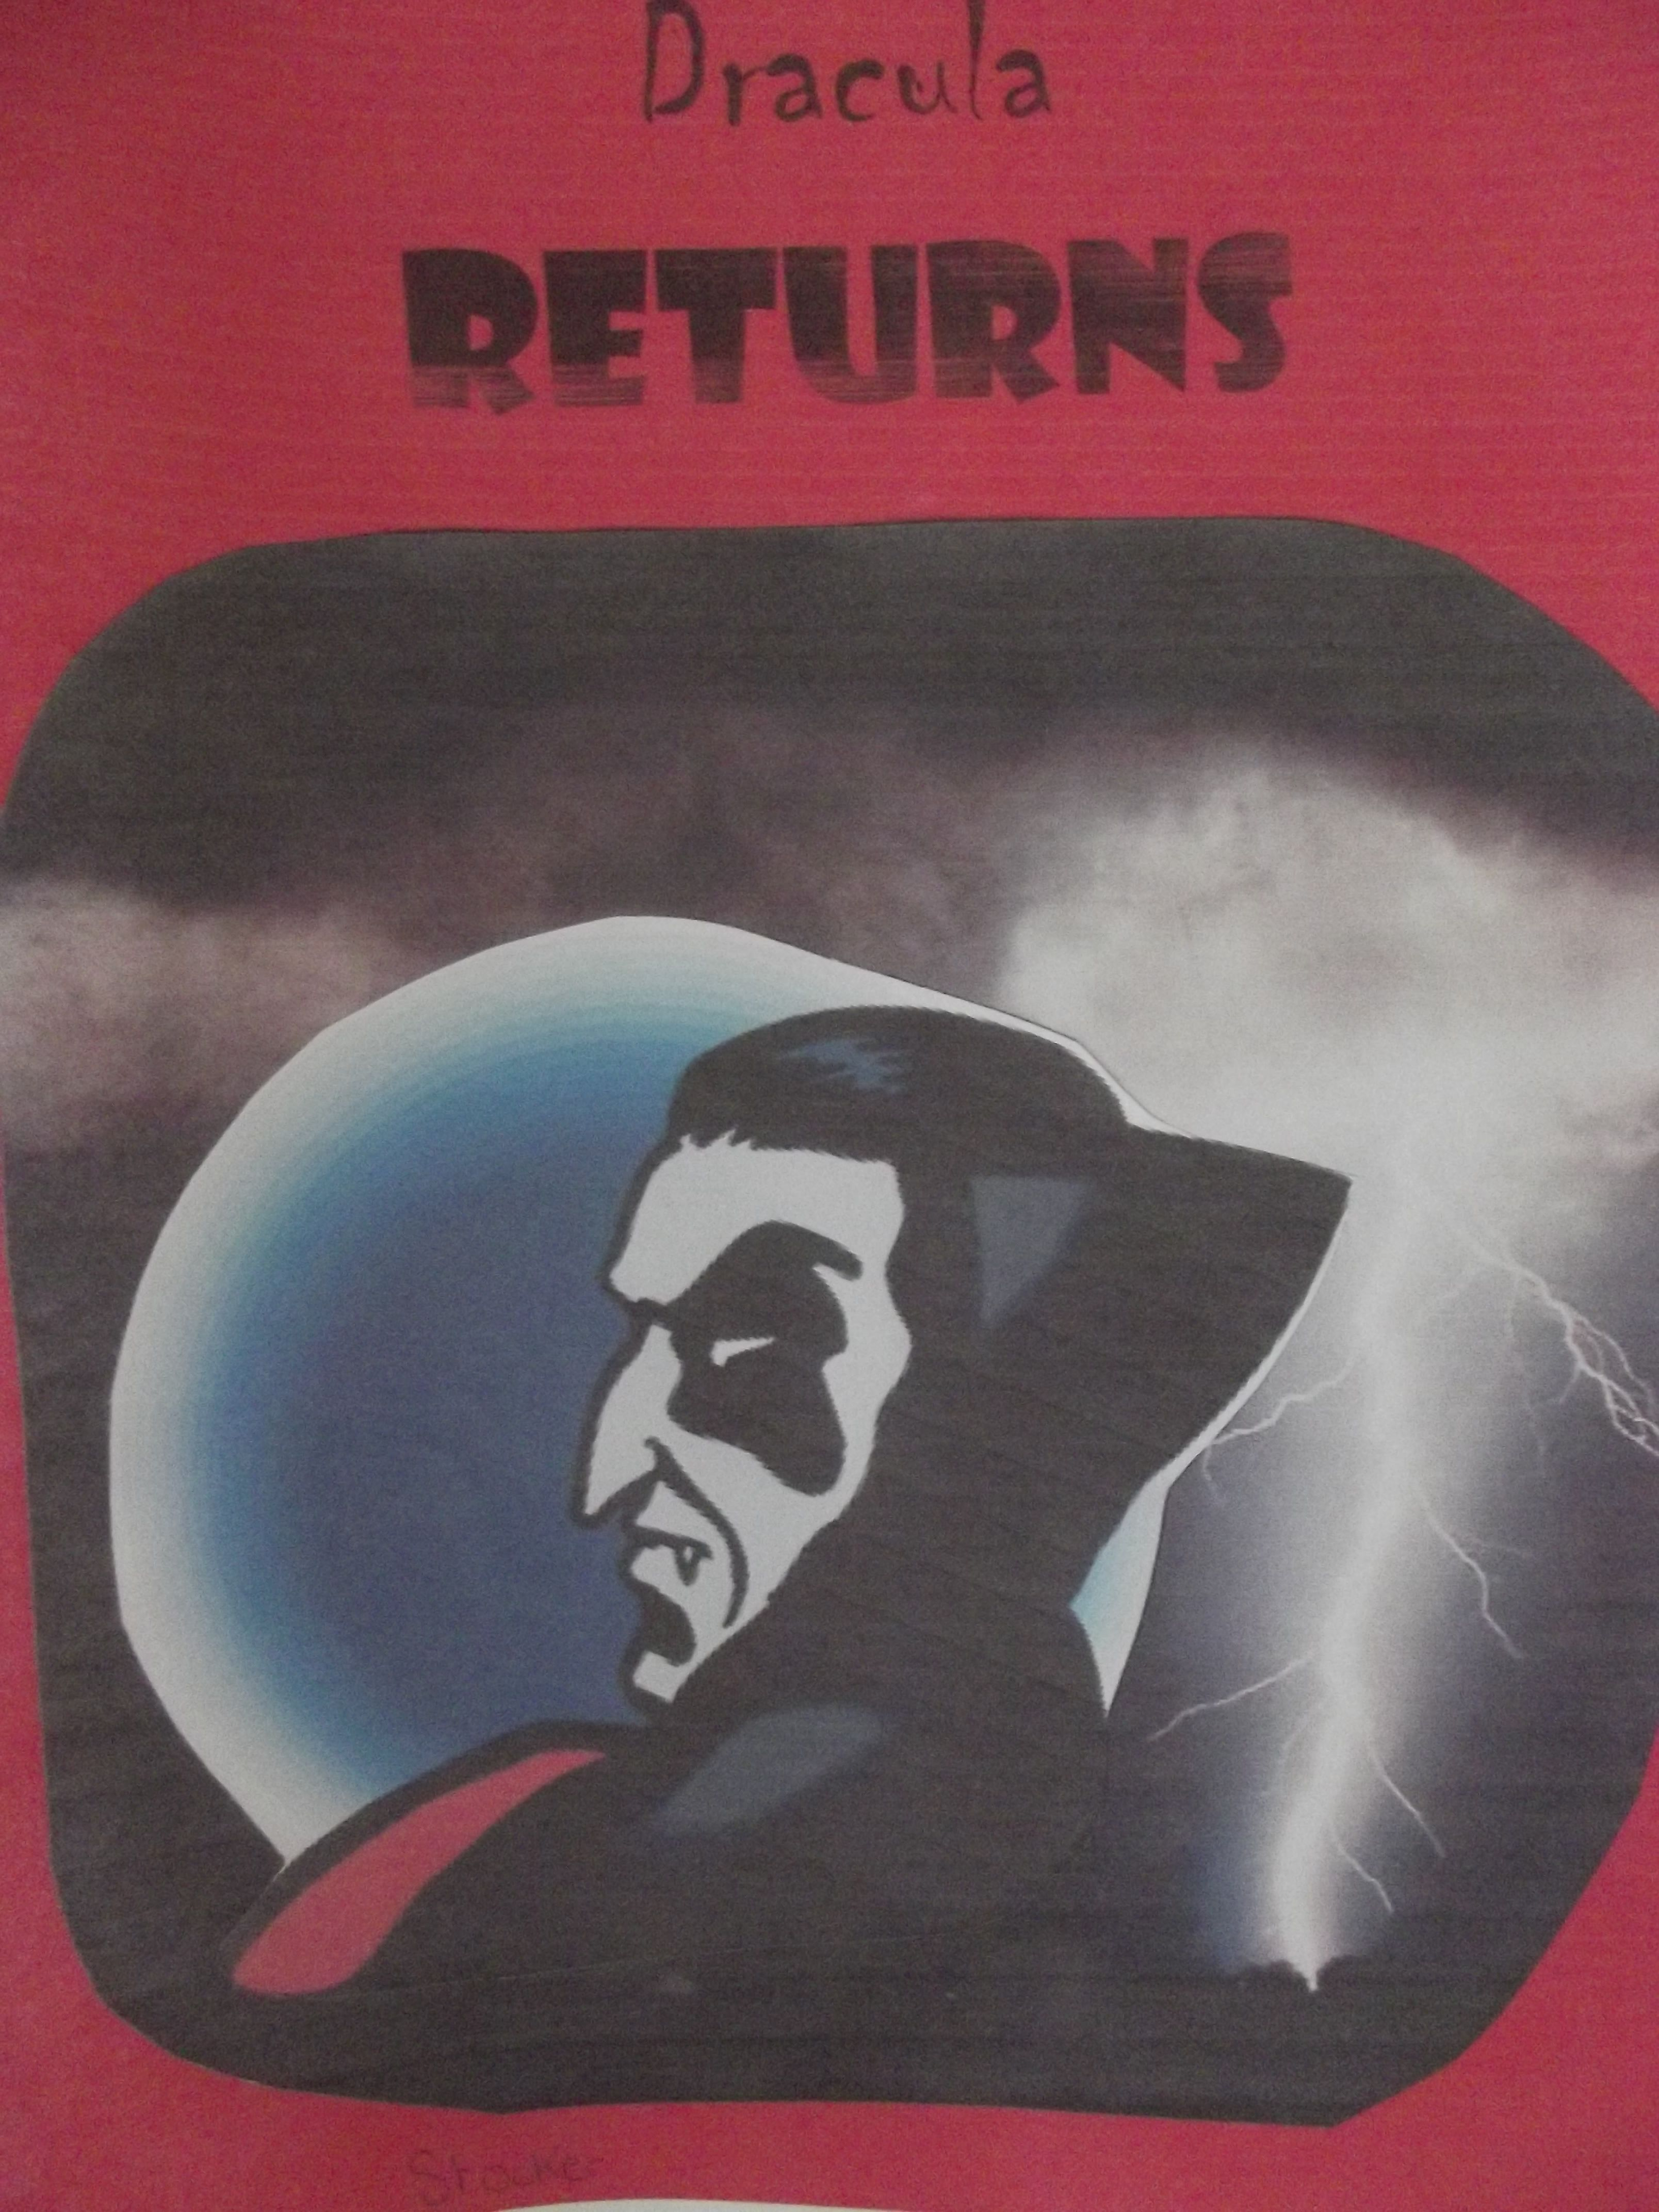 Poster design ks3 -  Dracula Returns A Powerful Front Cover Design From One Of Our Ks3 Students